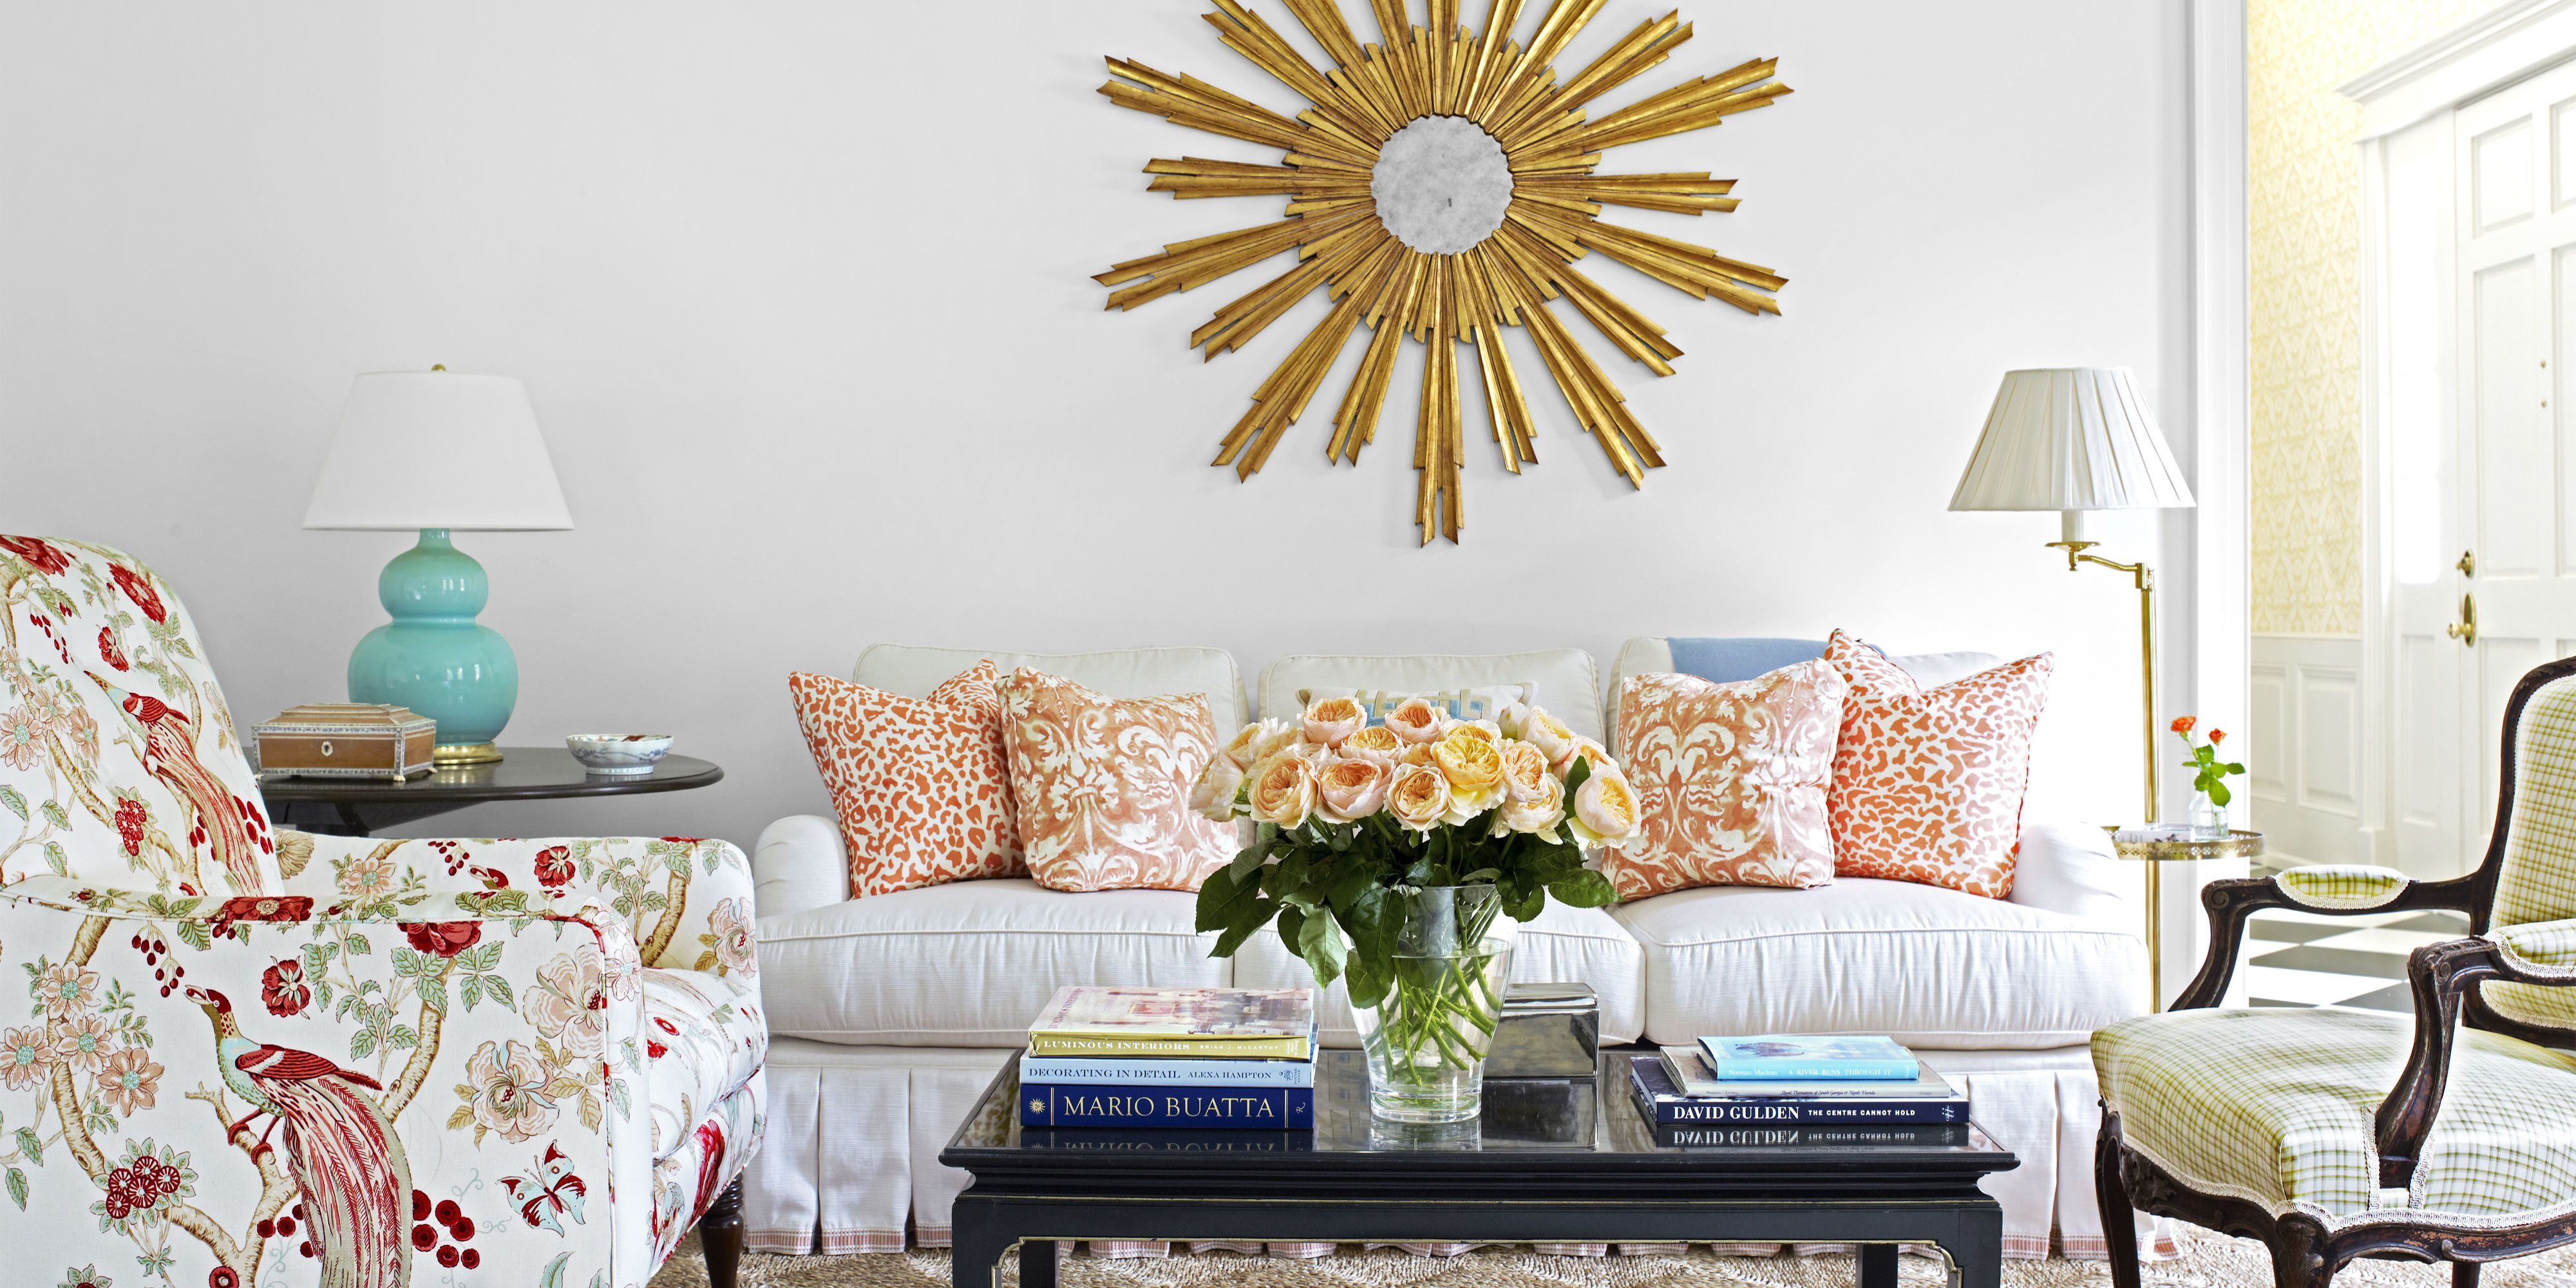 22 Best Interior Decorating Secrets   Decorating Tips and Tricks     image